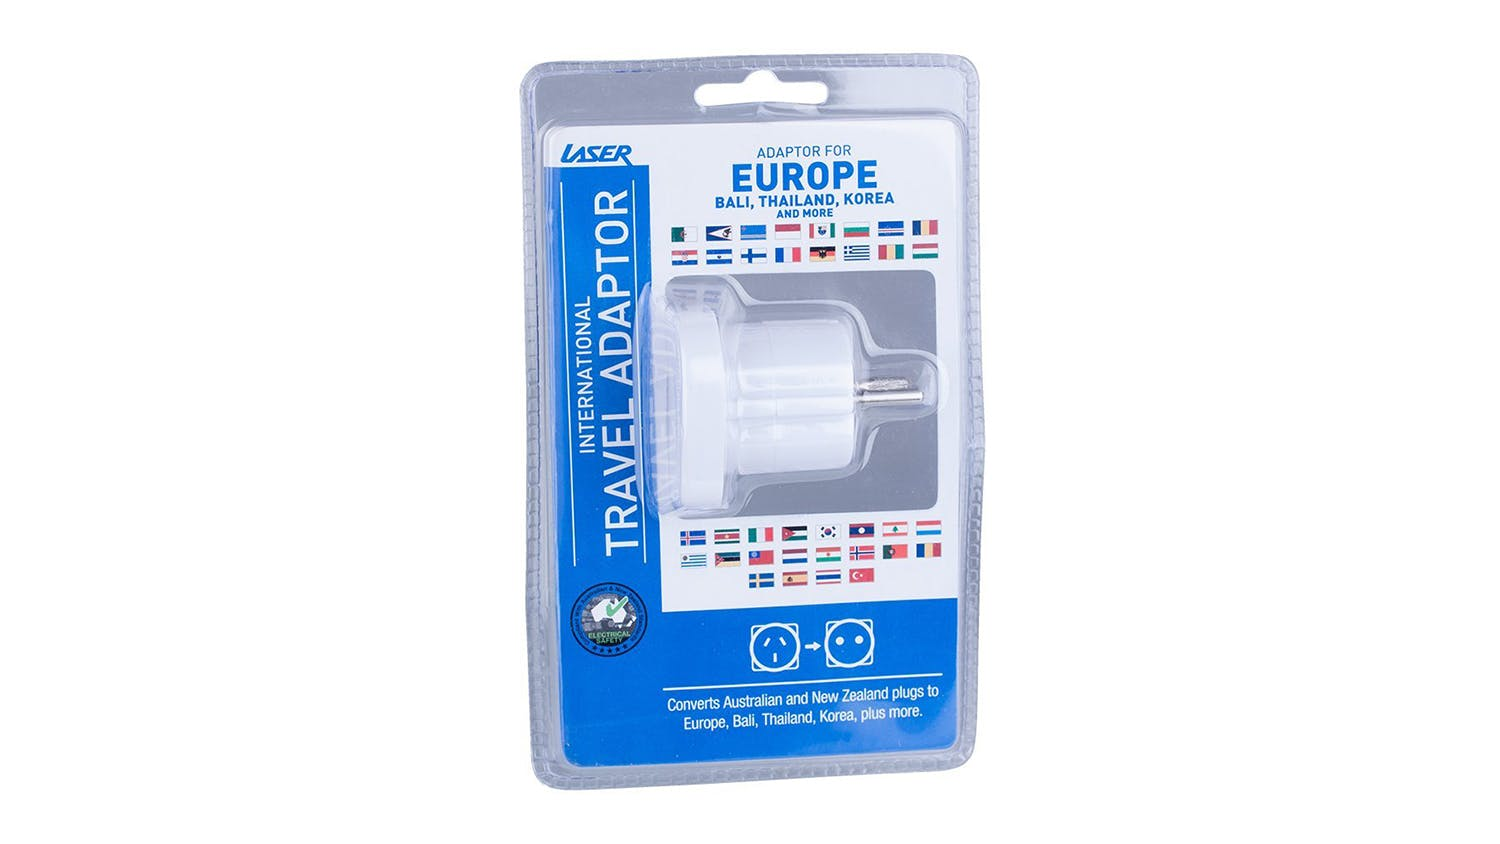 Laser Travel Adapter - EU Countries